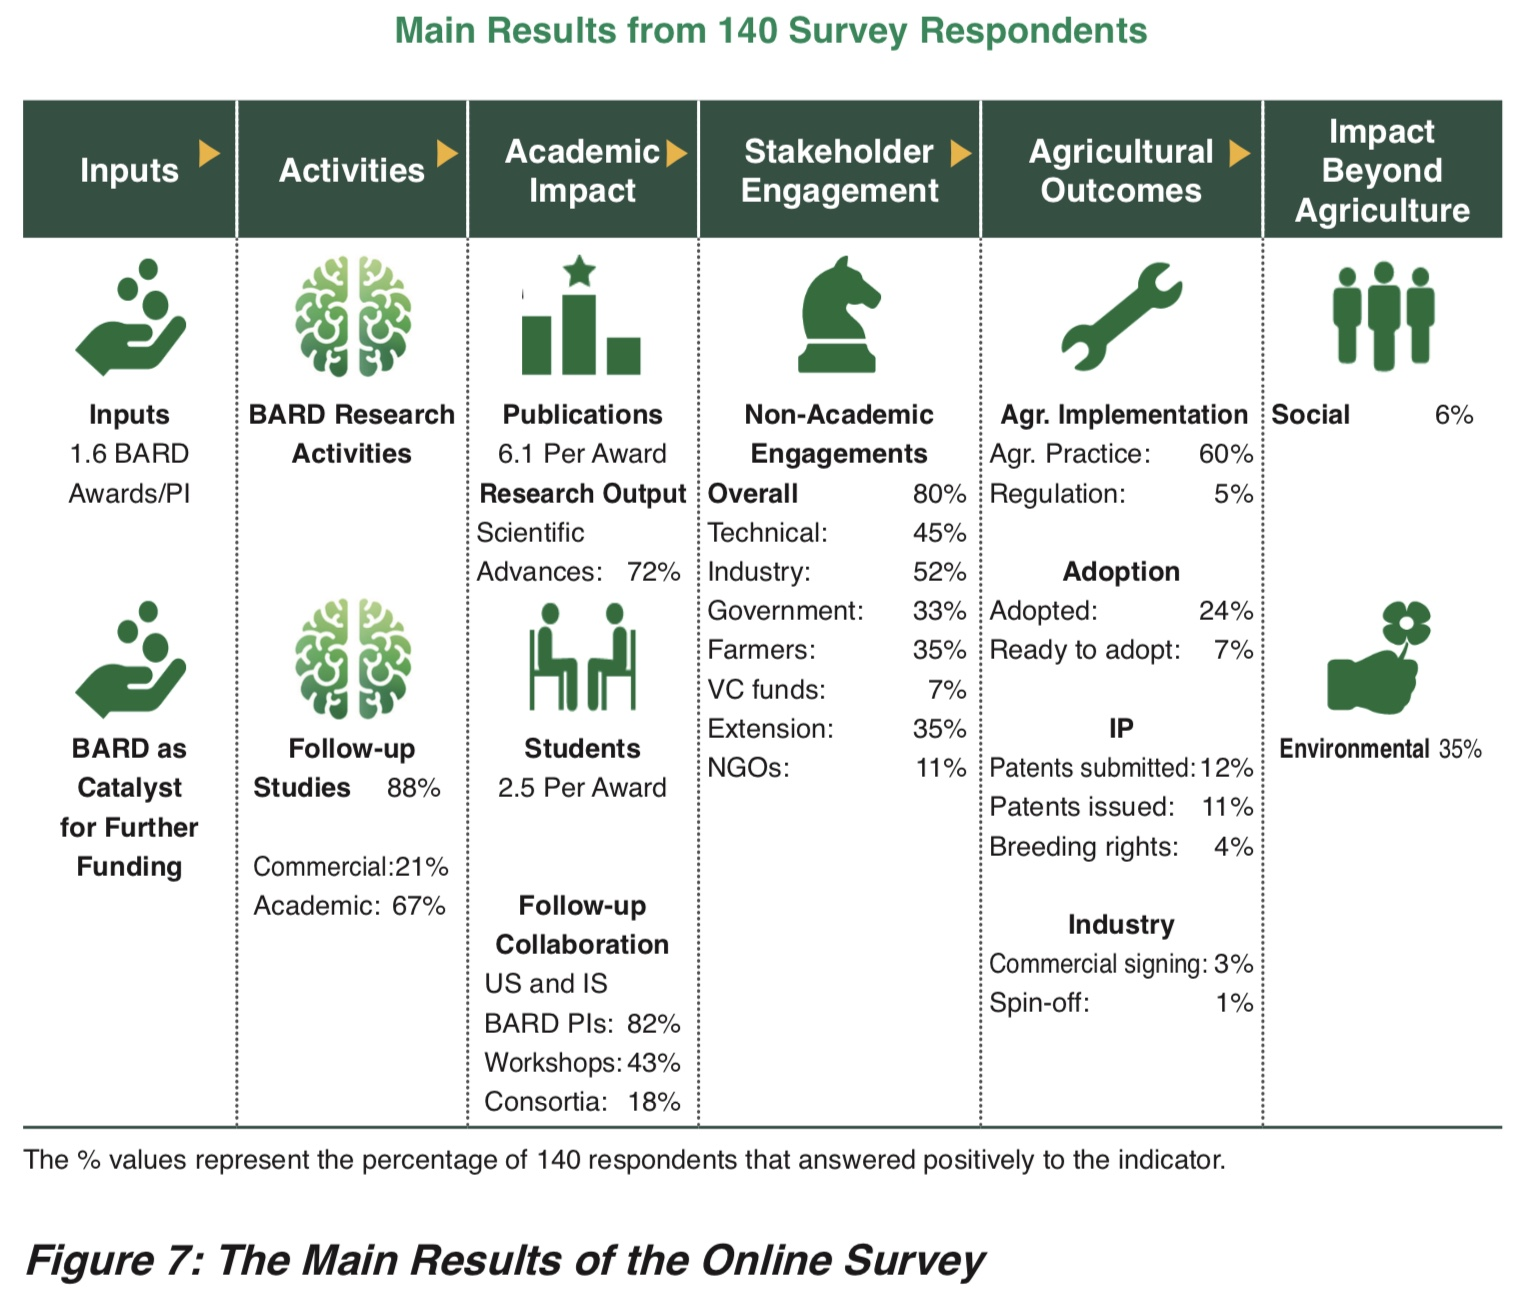 Figure 7: The Main Results of the Online Survey